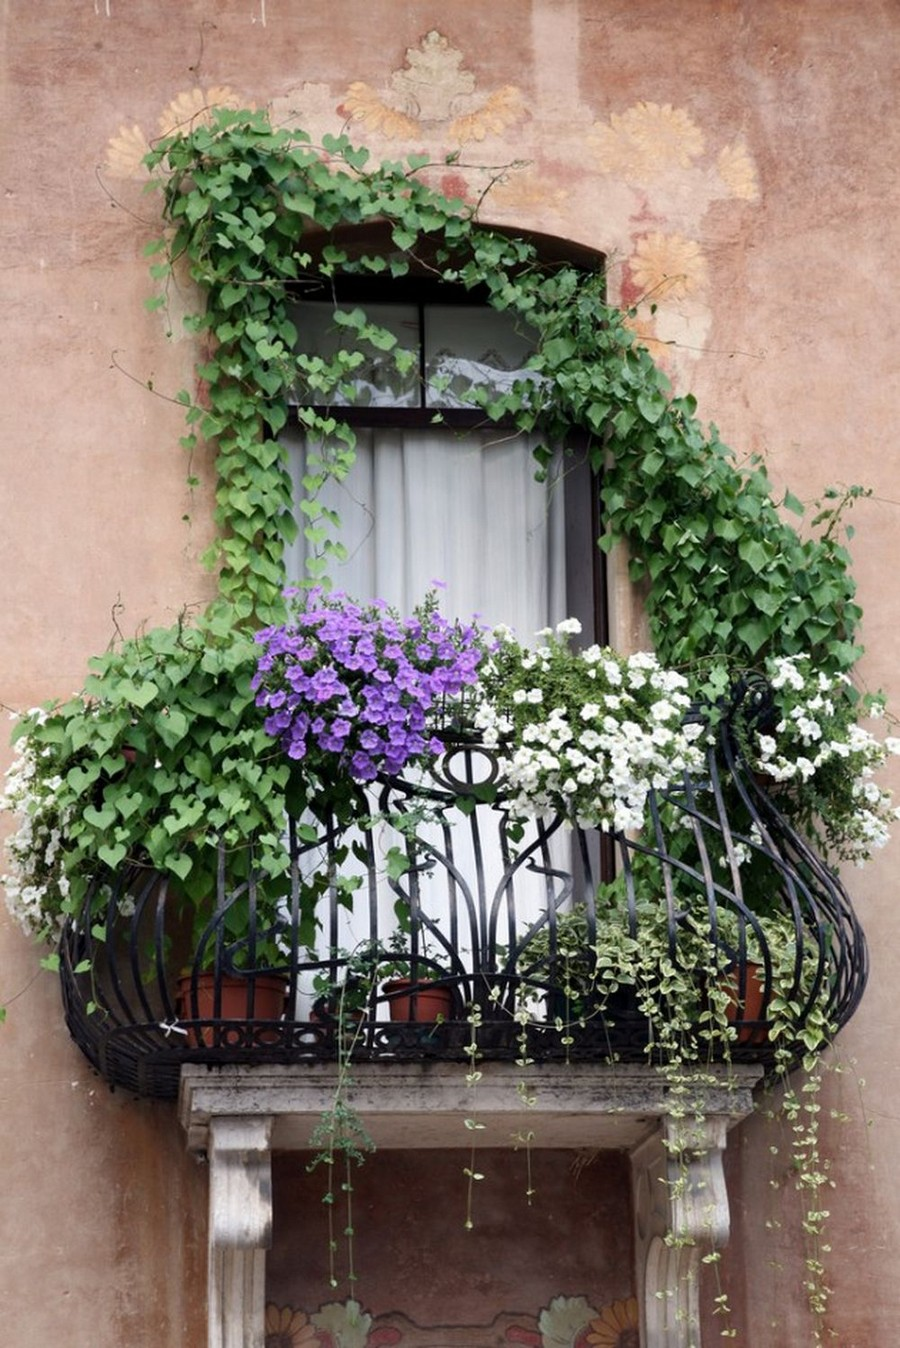 28-beautiful-balconet-balconette-Juliet-balcony-in-architecture-exterior-design-wrough-metal-railing-forgery-barrier-flower-bed